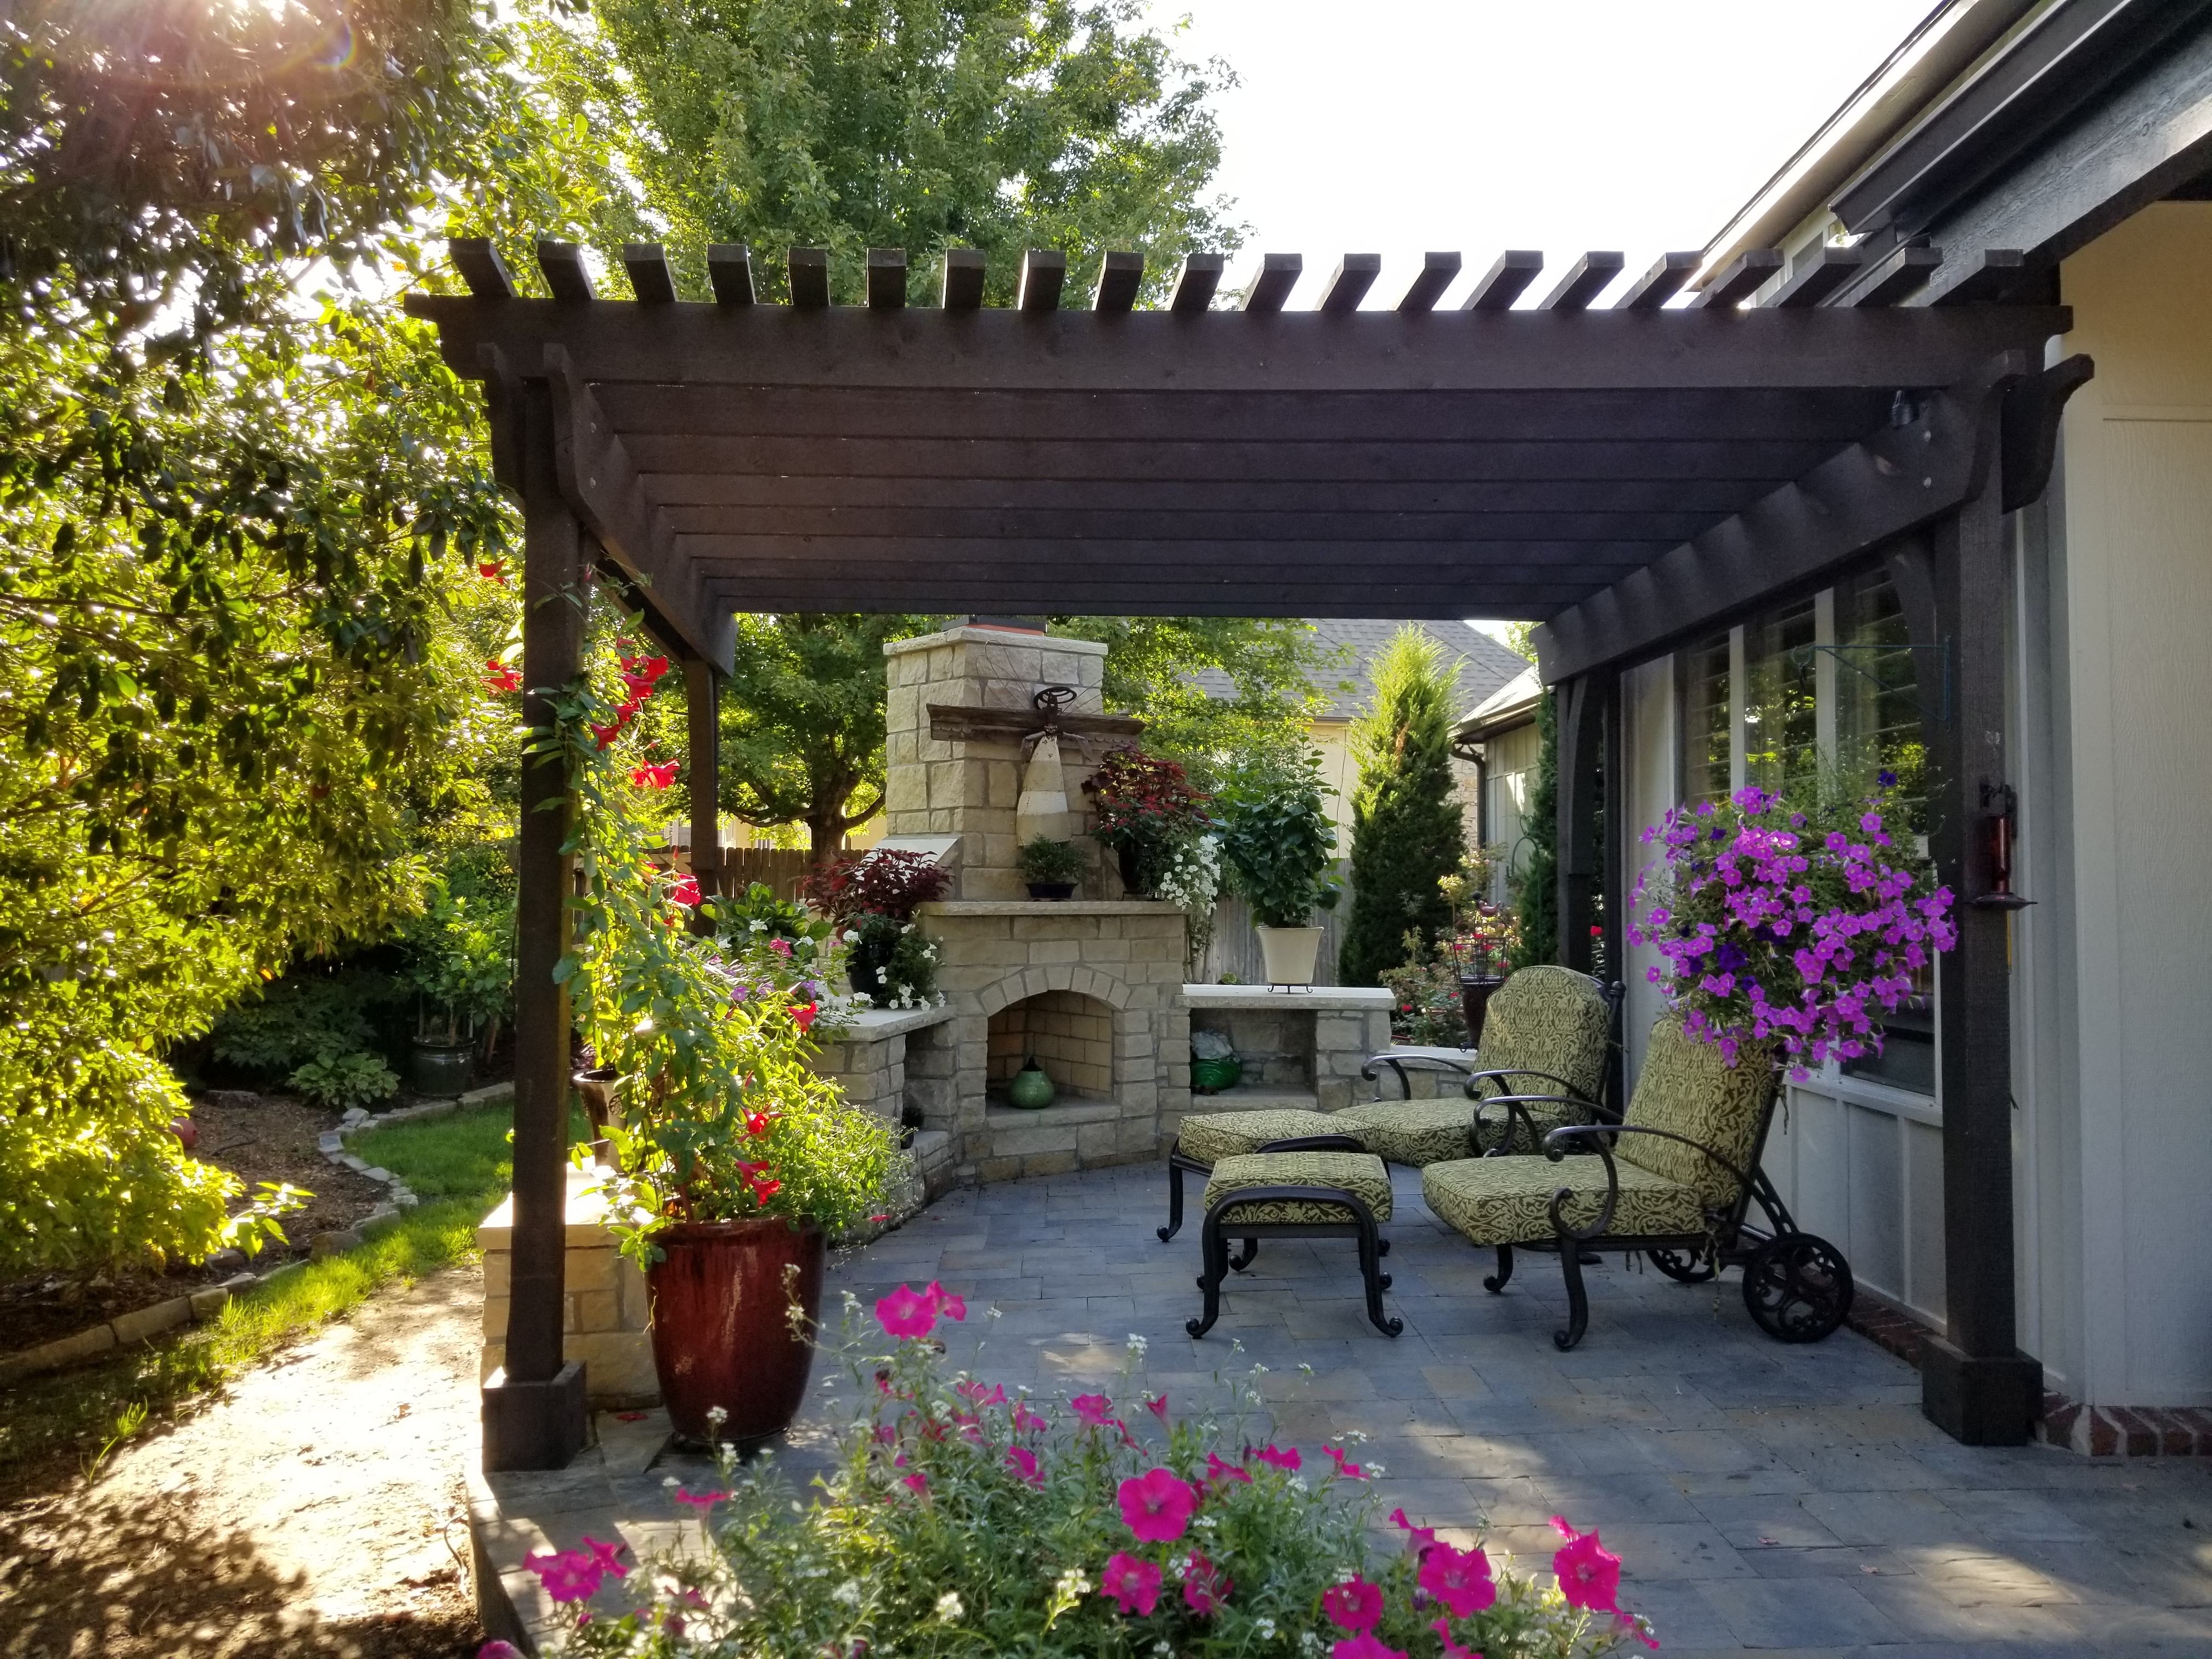 patios kansas landscaping breathtaking city residential walkways designs and patio rosehill pictures gardens walkway